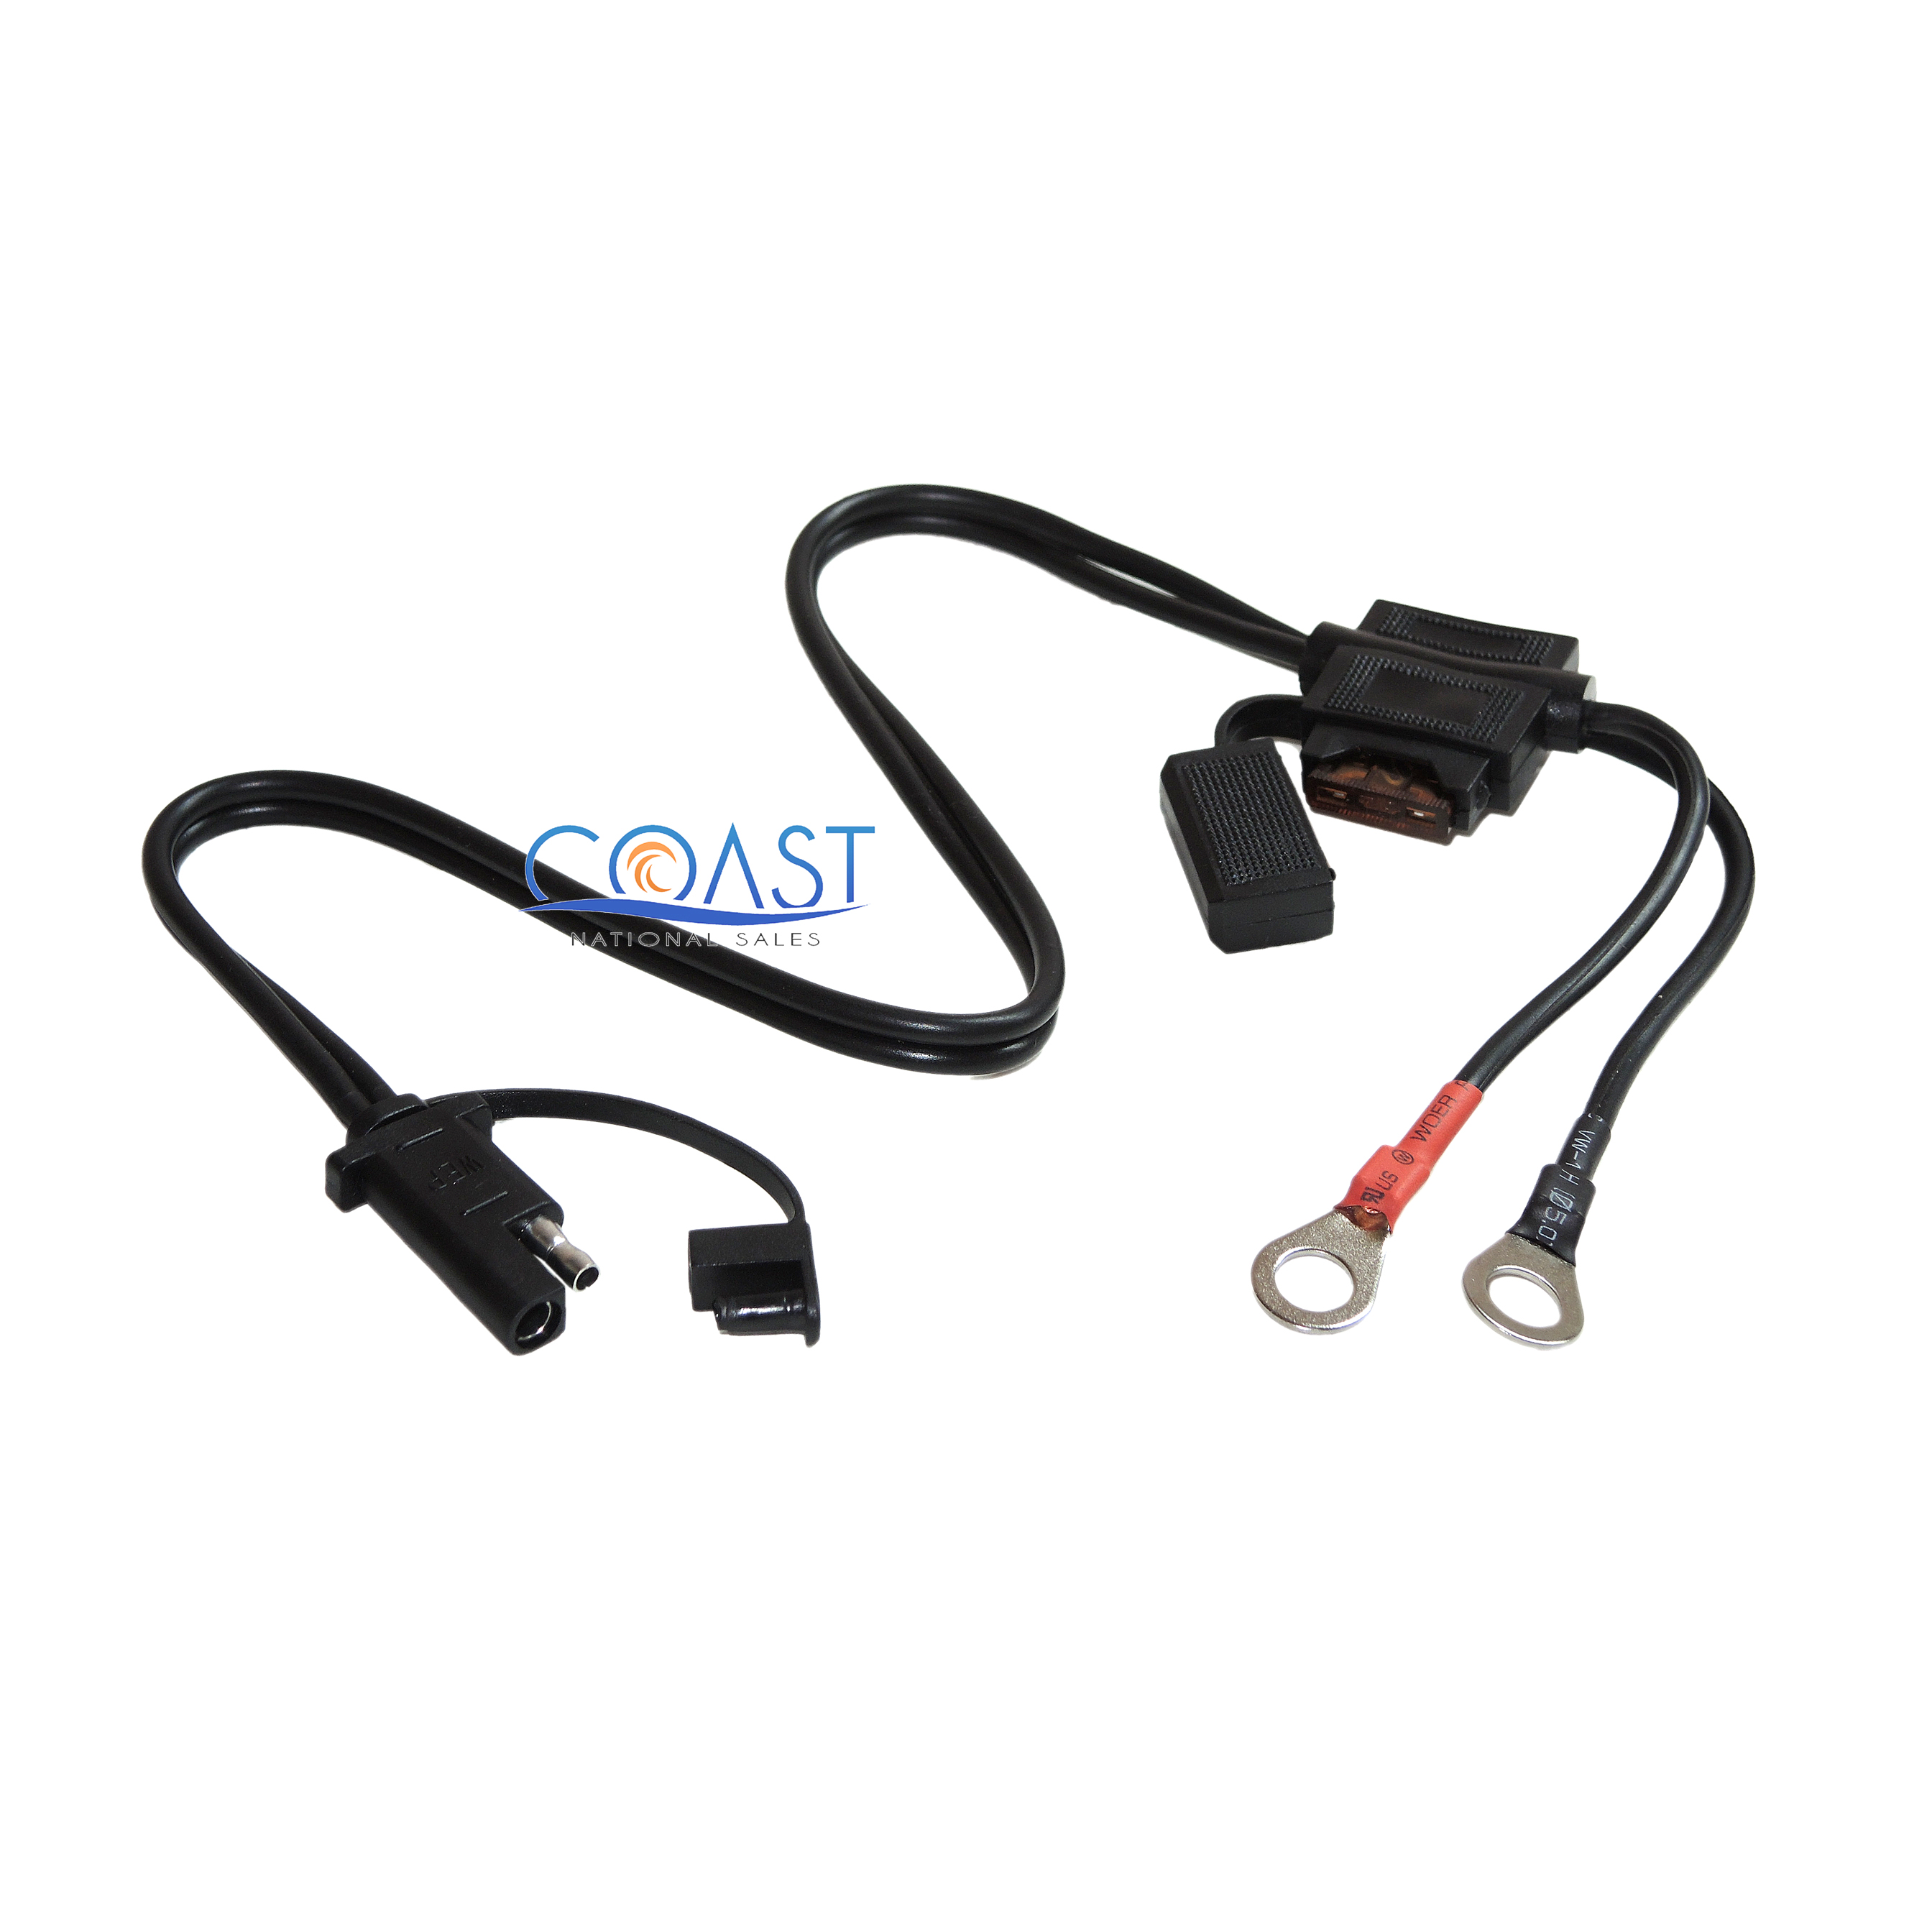 Quick Connect Battery Wire Harness Snap Cord Ring Charger Terminal | eBay | Battery Wire Harness |  | eBay